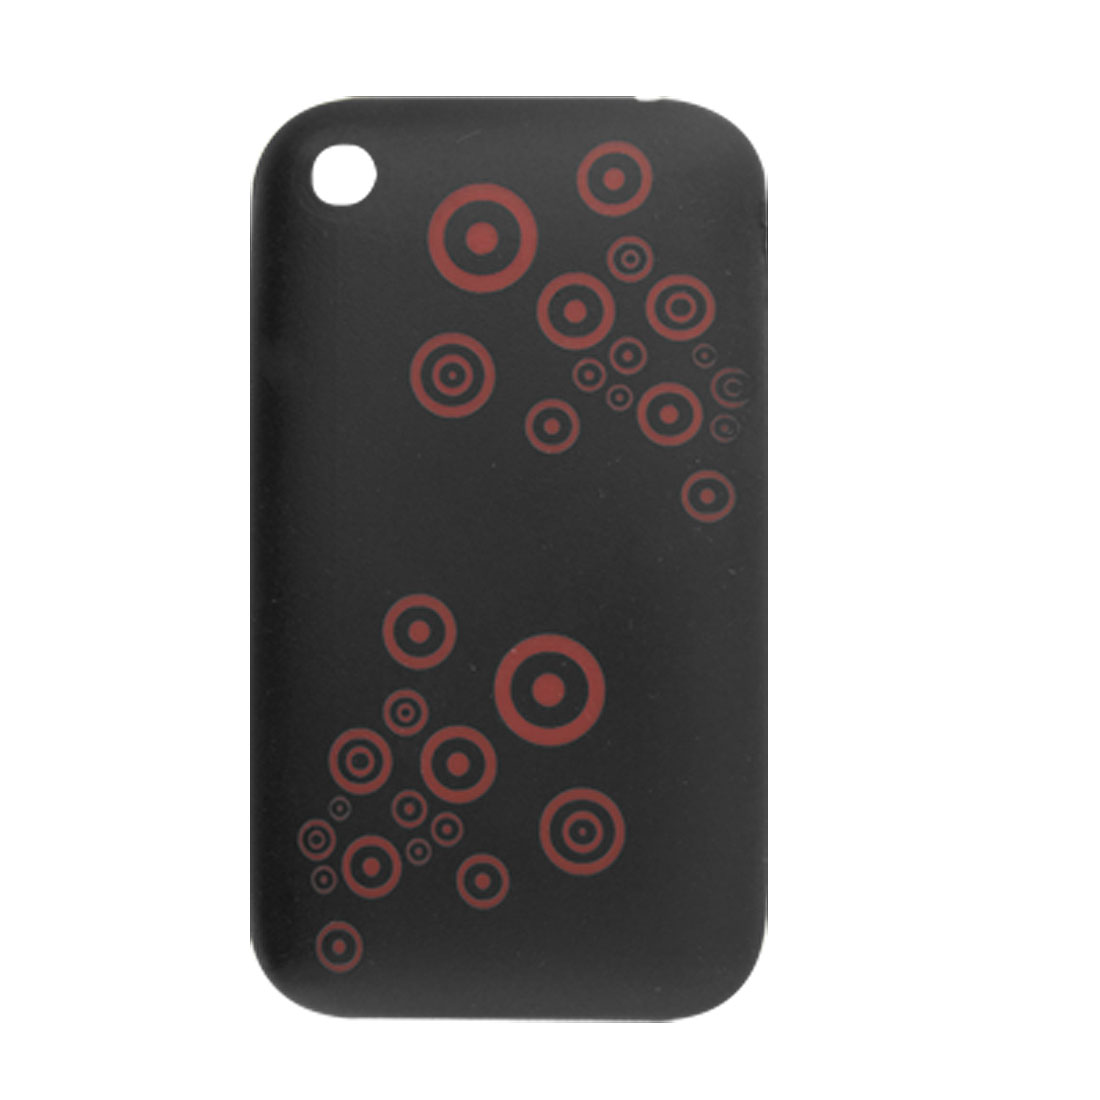 Red Dot Pattern Black Soft Skin Case for iPhone 3G